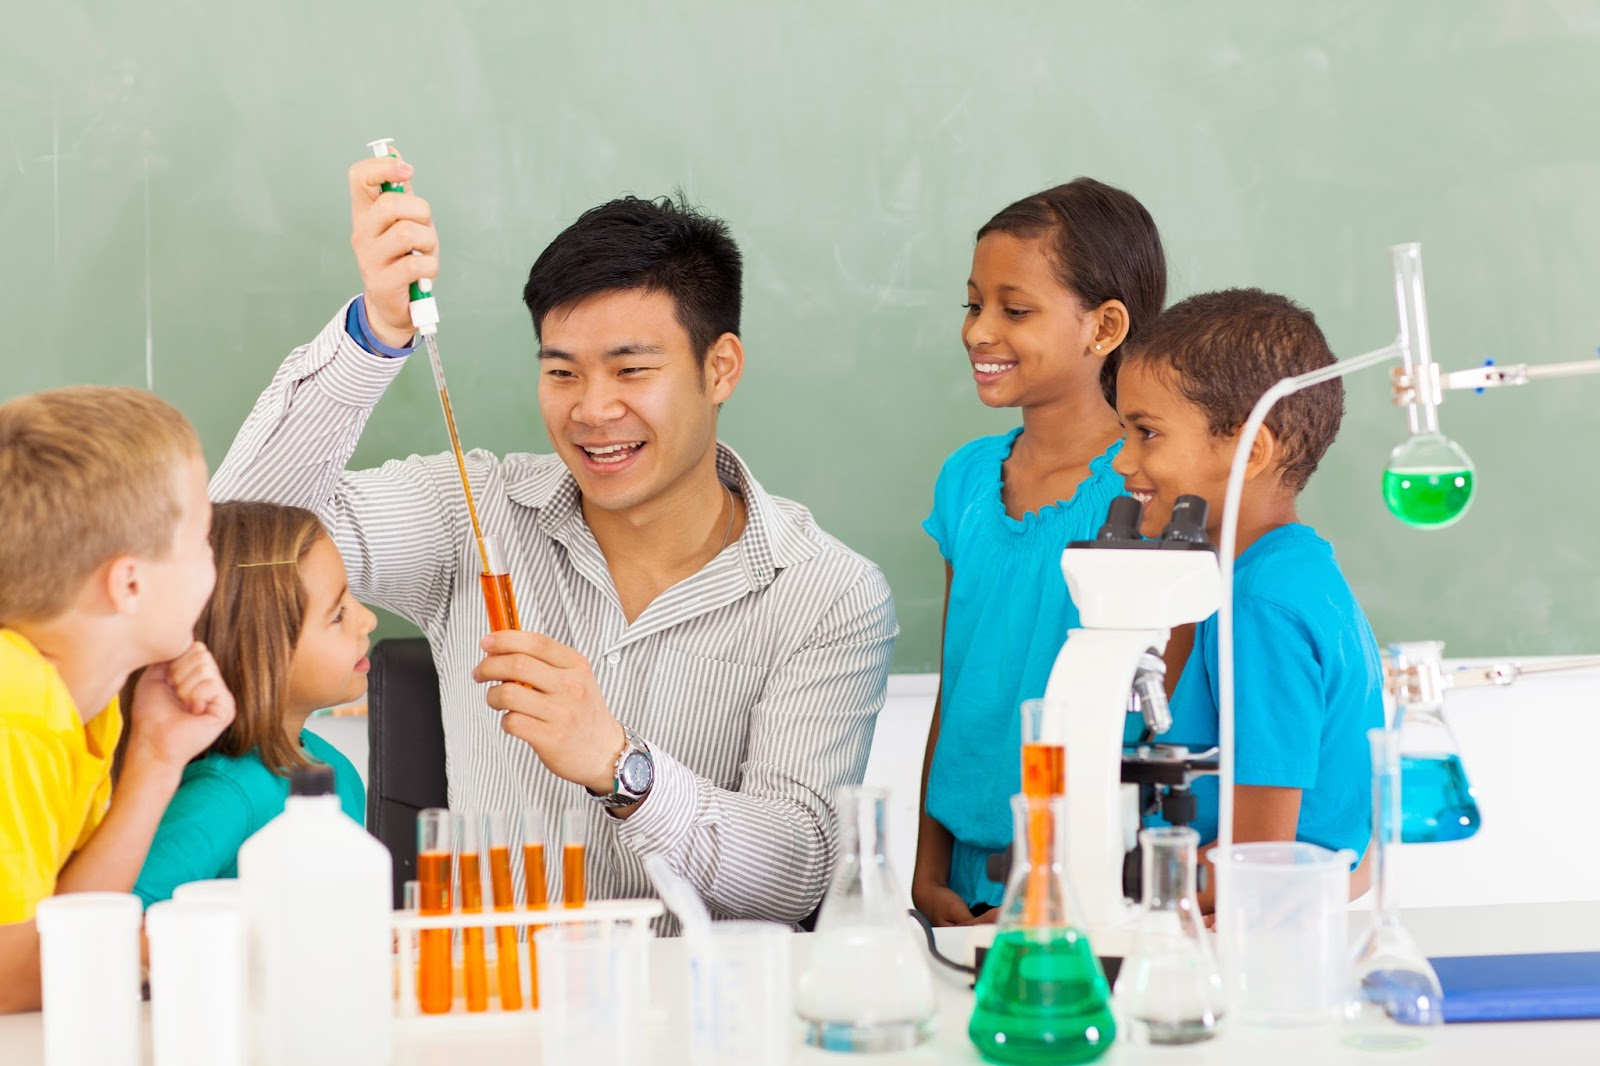 teachers science lab learning students chemistry paradise planning classrooms